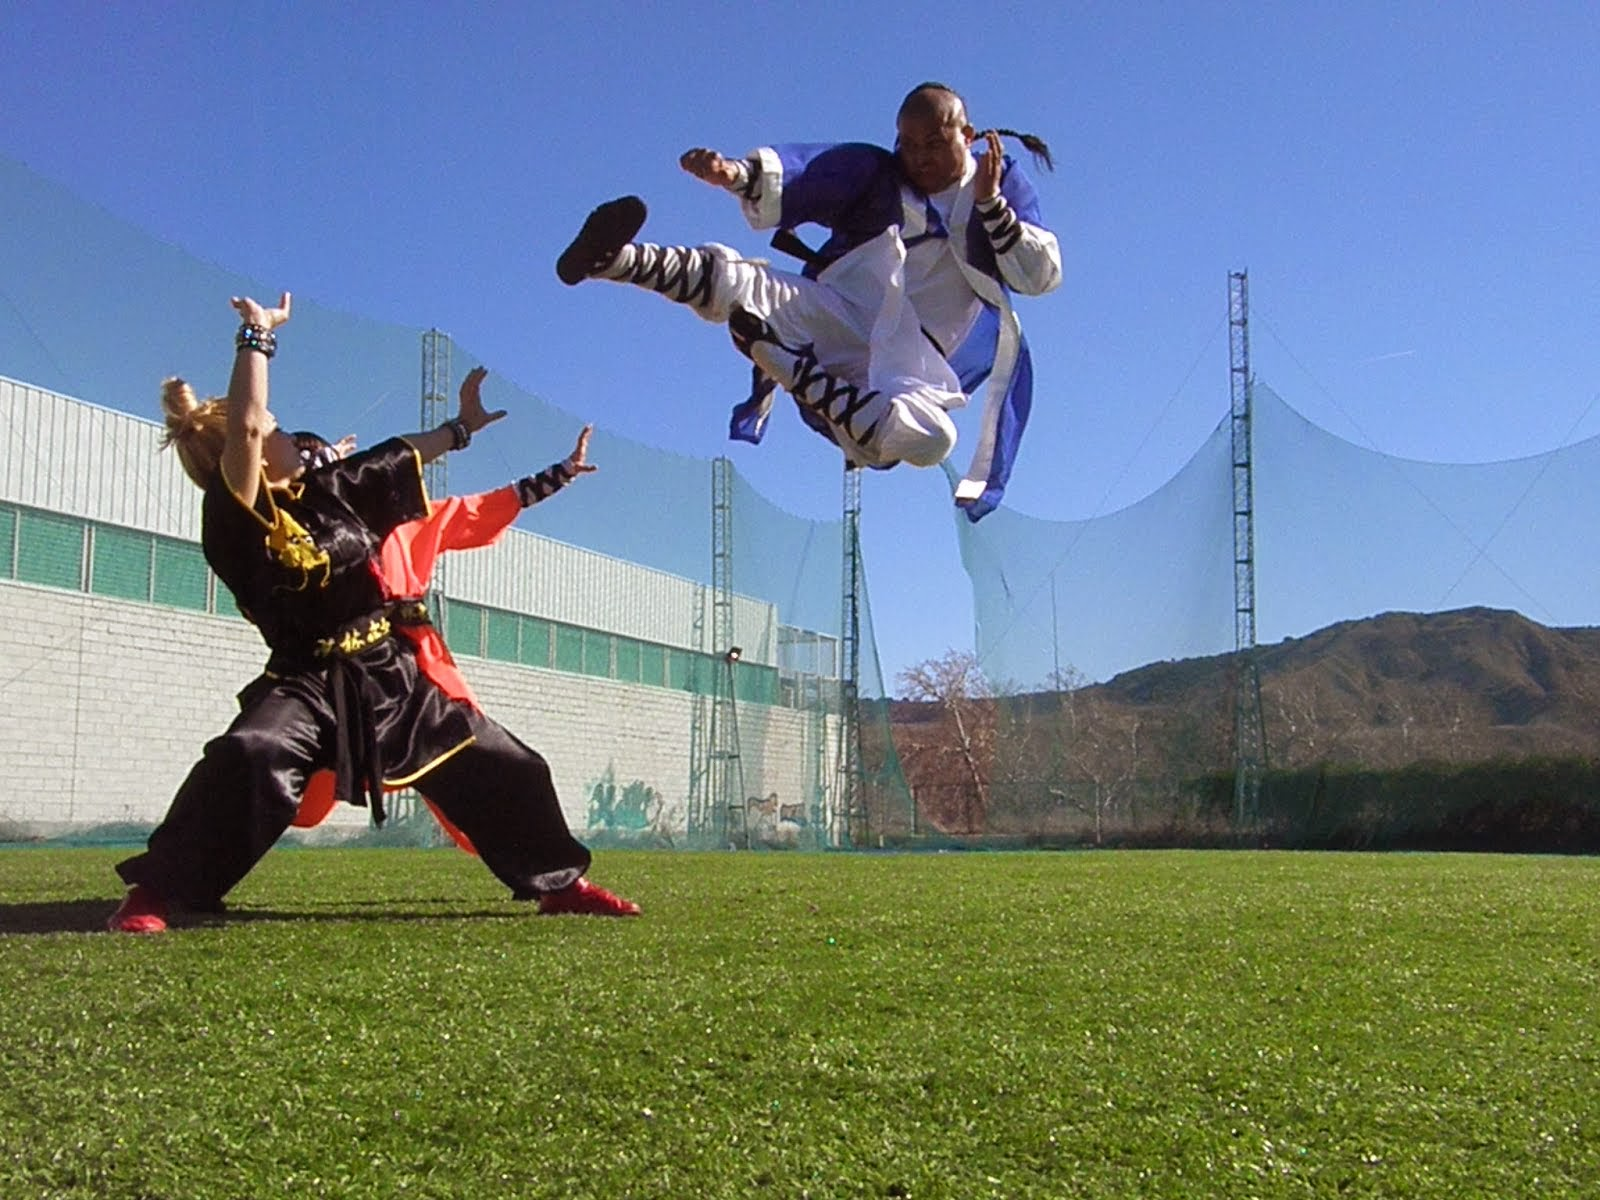 CURSO 五形拳 Wu Xing Quan the 5 animals Shaolin